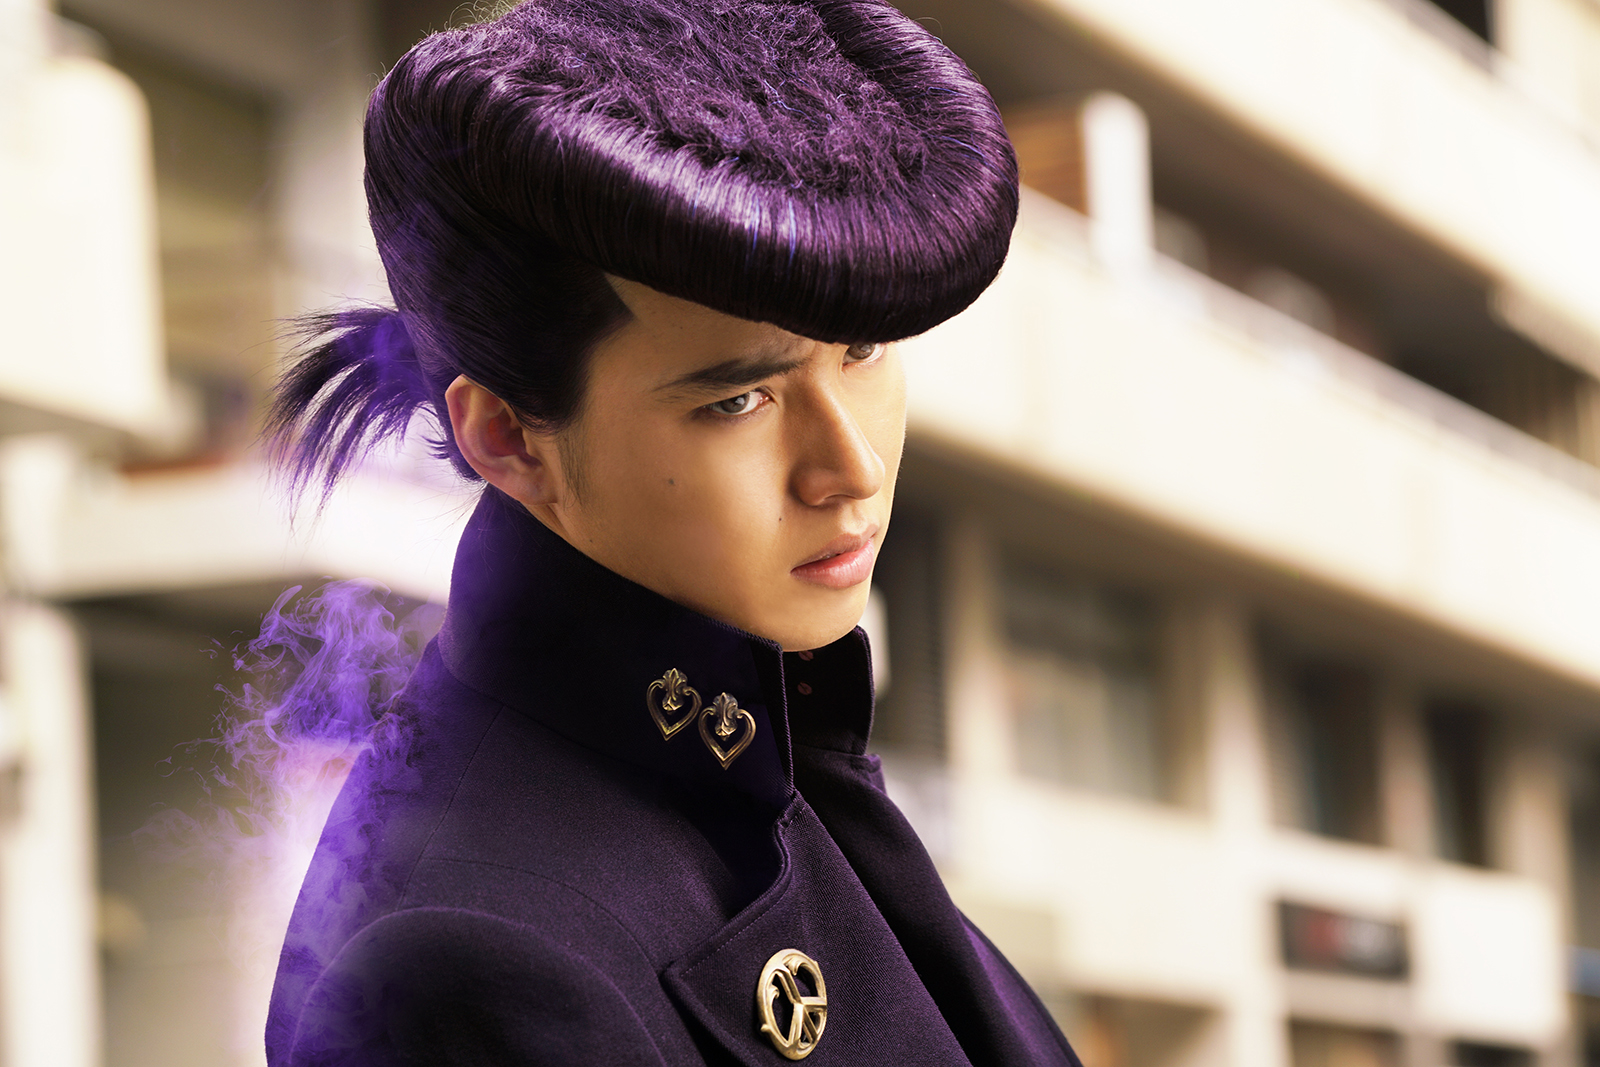 Jojos Bizarre Adventure: Diamond is Unbreakable_imagen2